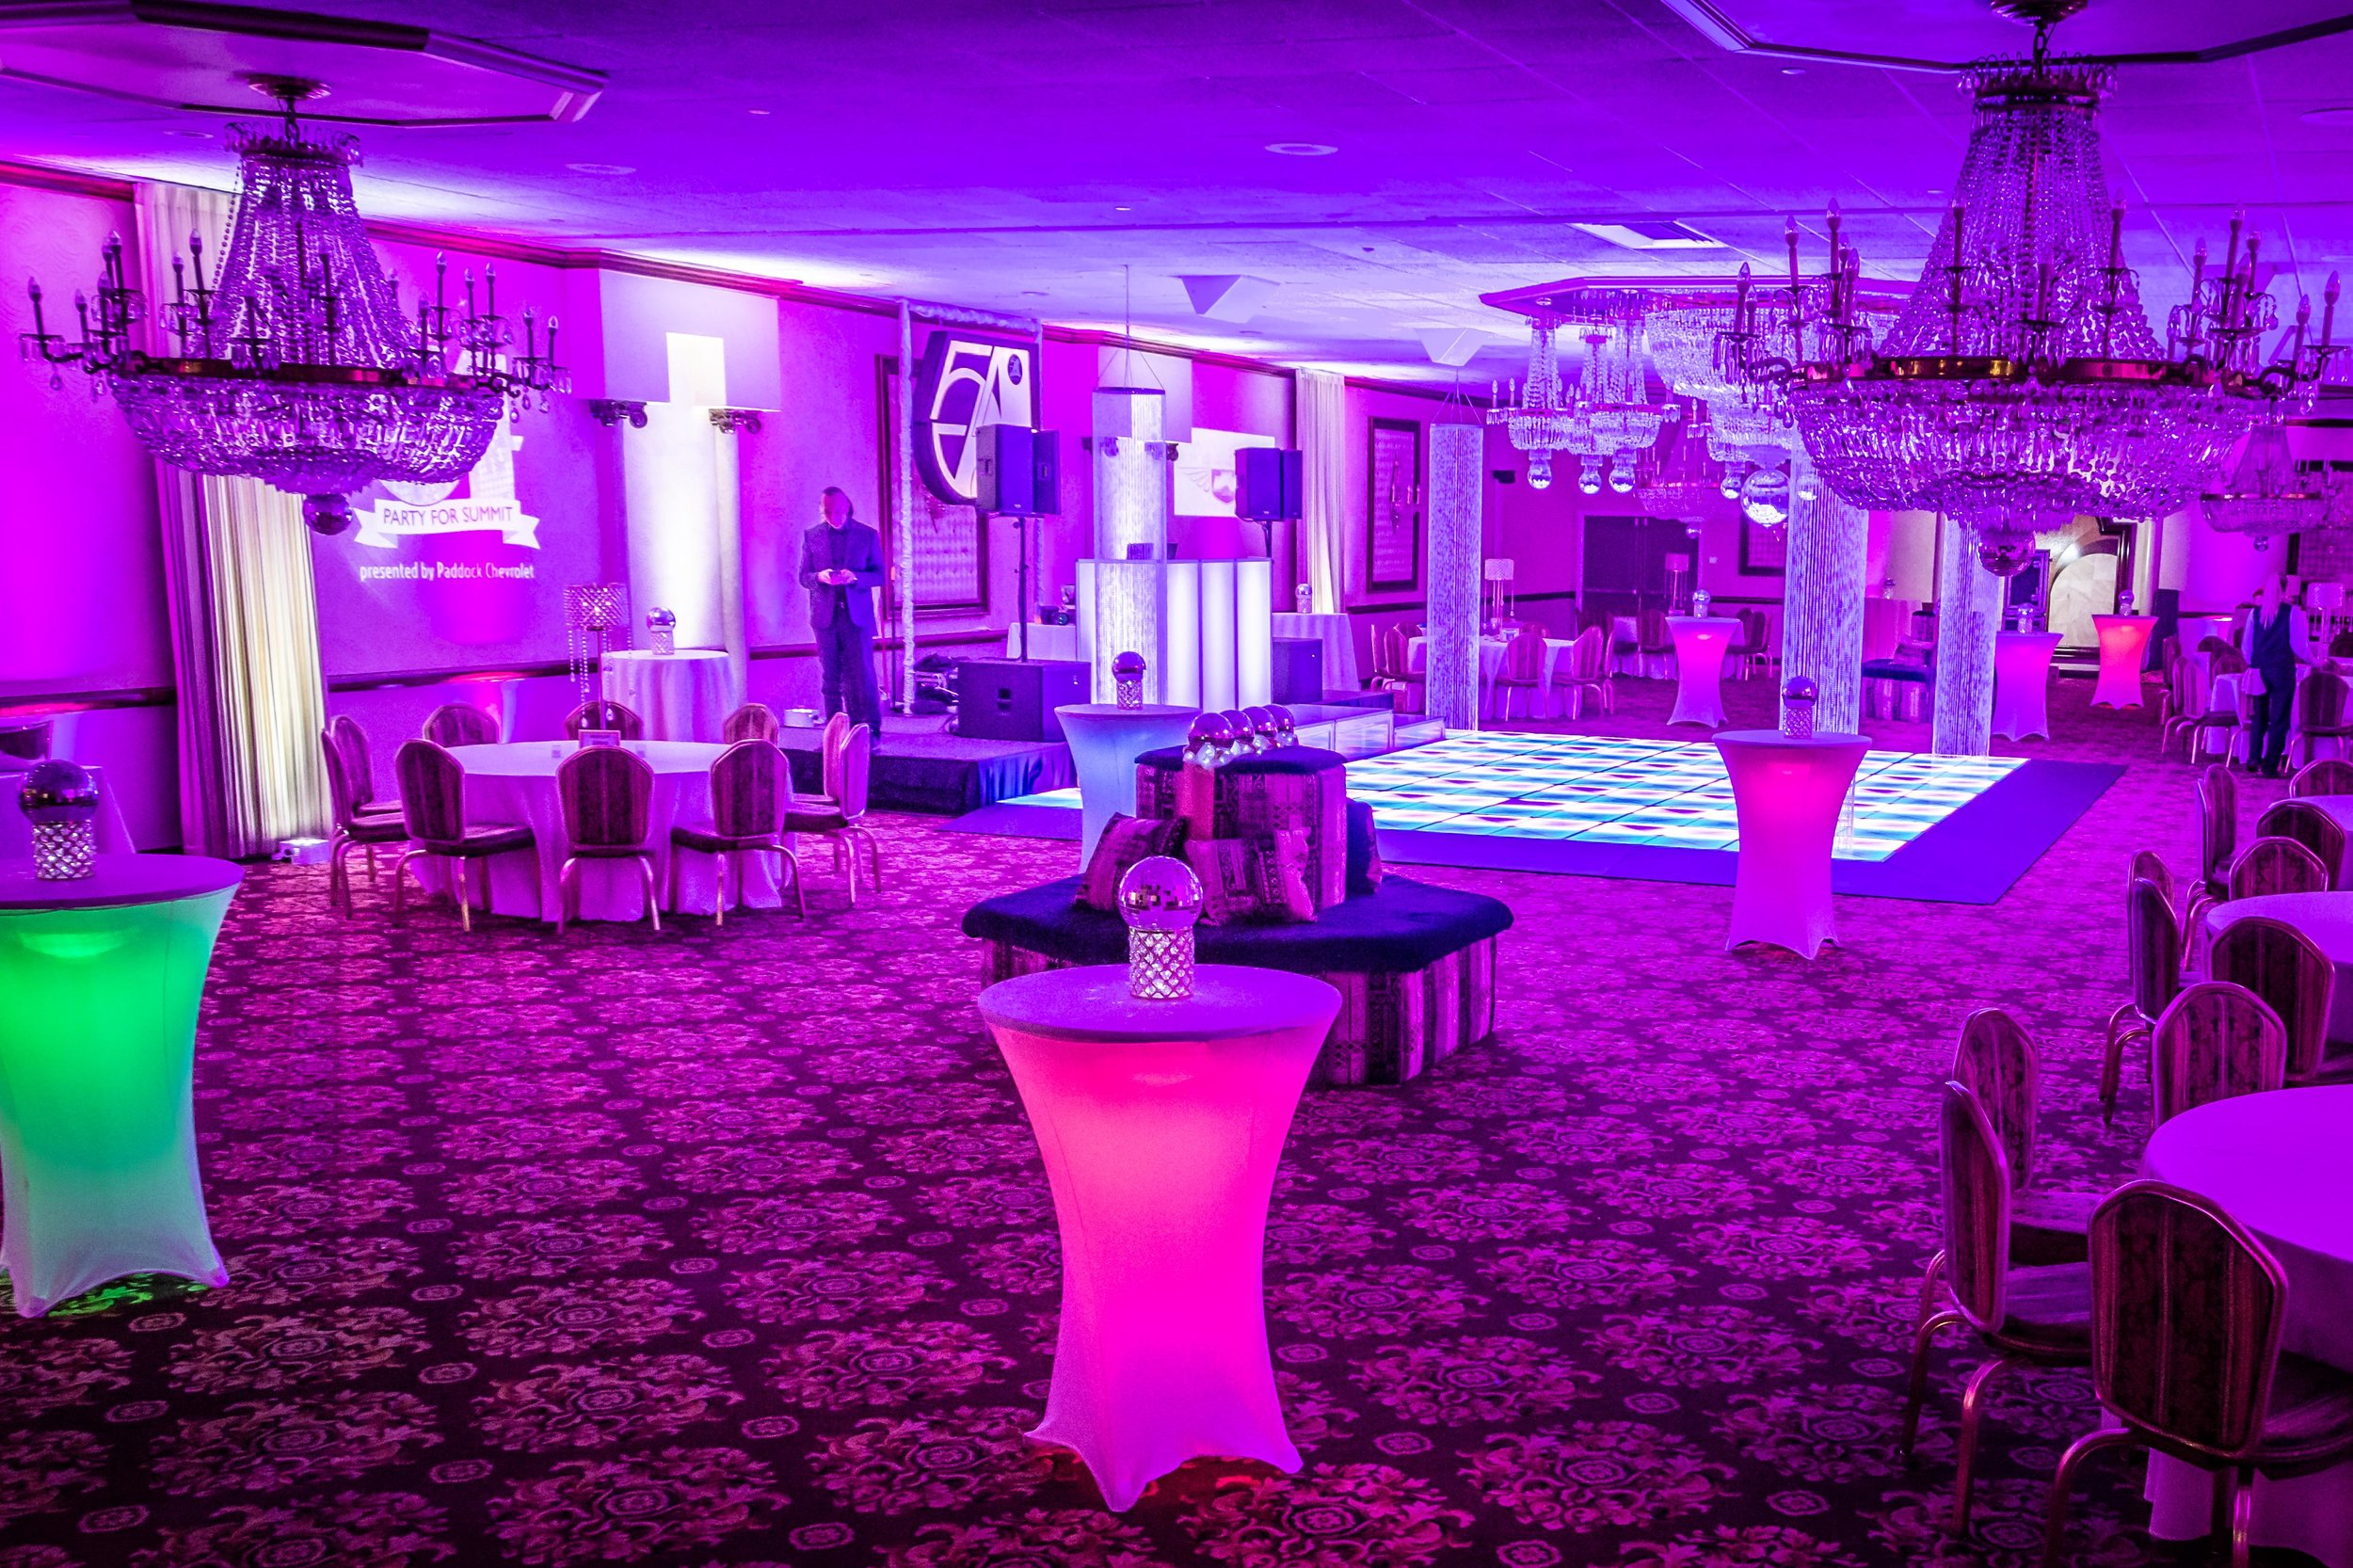 LED Dance Floor Room Setup.jpg